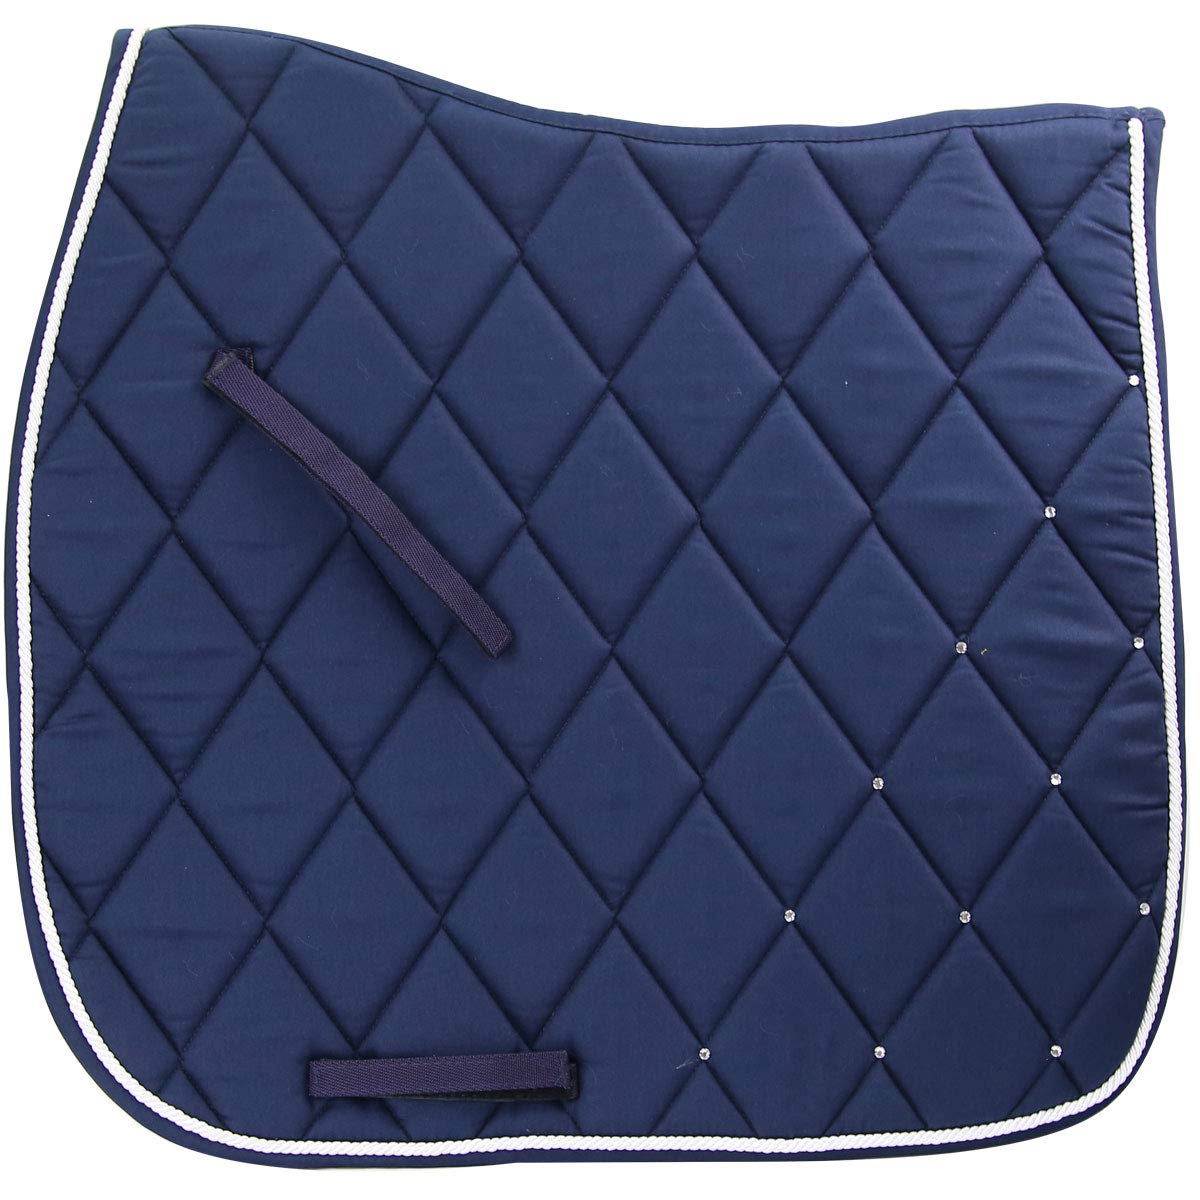 Navy Blue Pad with White cord Country Pride Dressage Saddle Pad with Rhinestones Spine measures 23 inch; Drop measure 22.5 inches